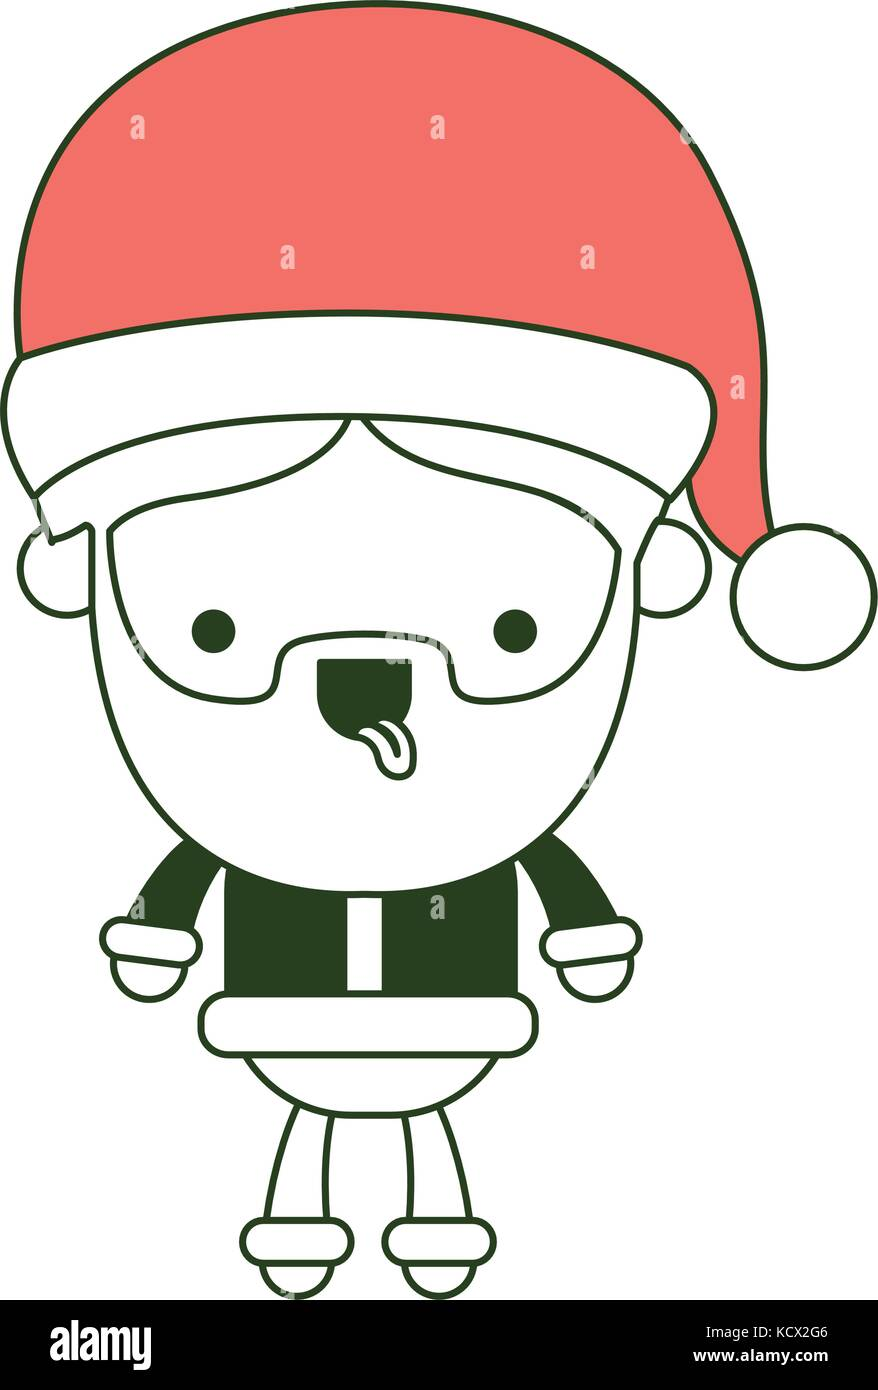 santa claus cartoon full body tongue out expression on color section ...